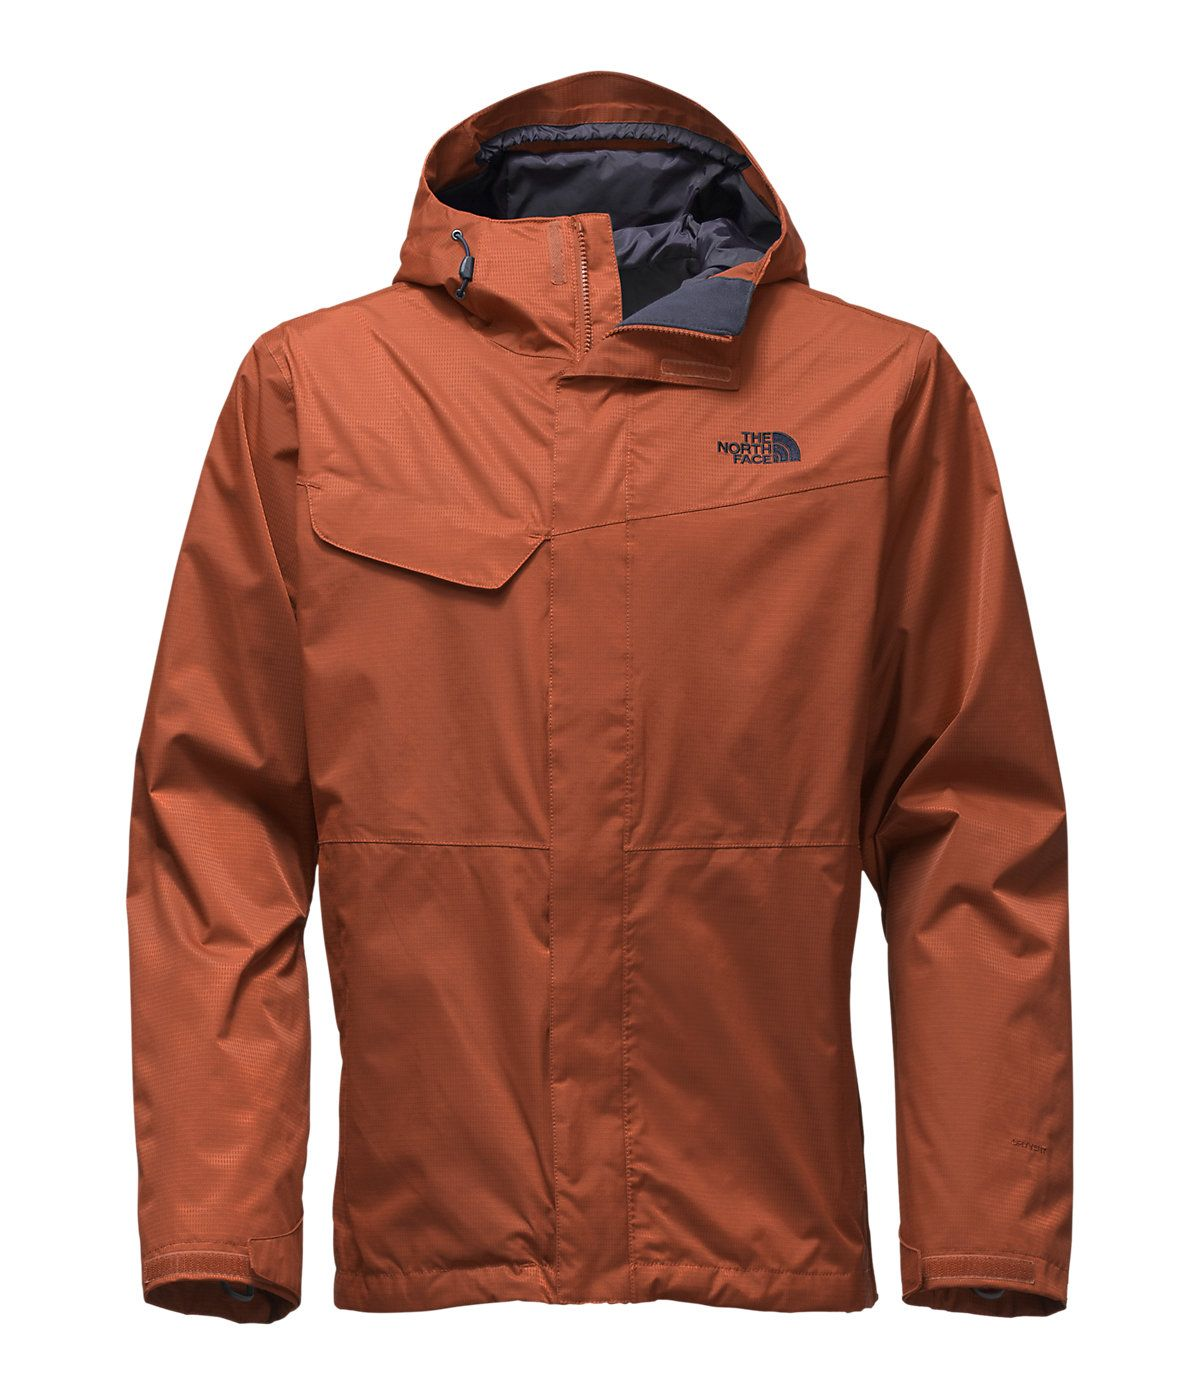 Men S Beswick Triclimate Jacket The North Face Triclimate Jacket Jackets Mens Jackets [ 1396 x 1200 Pixel ]